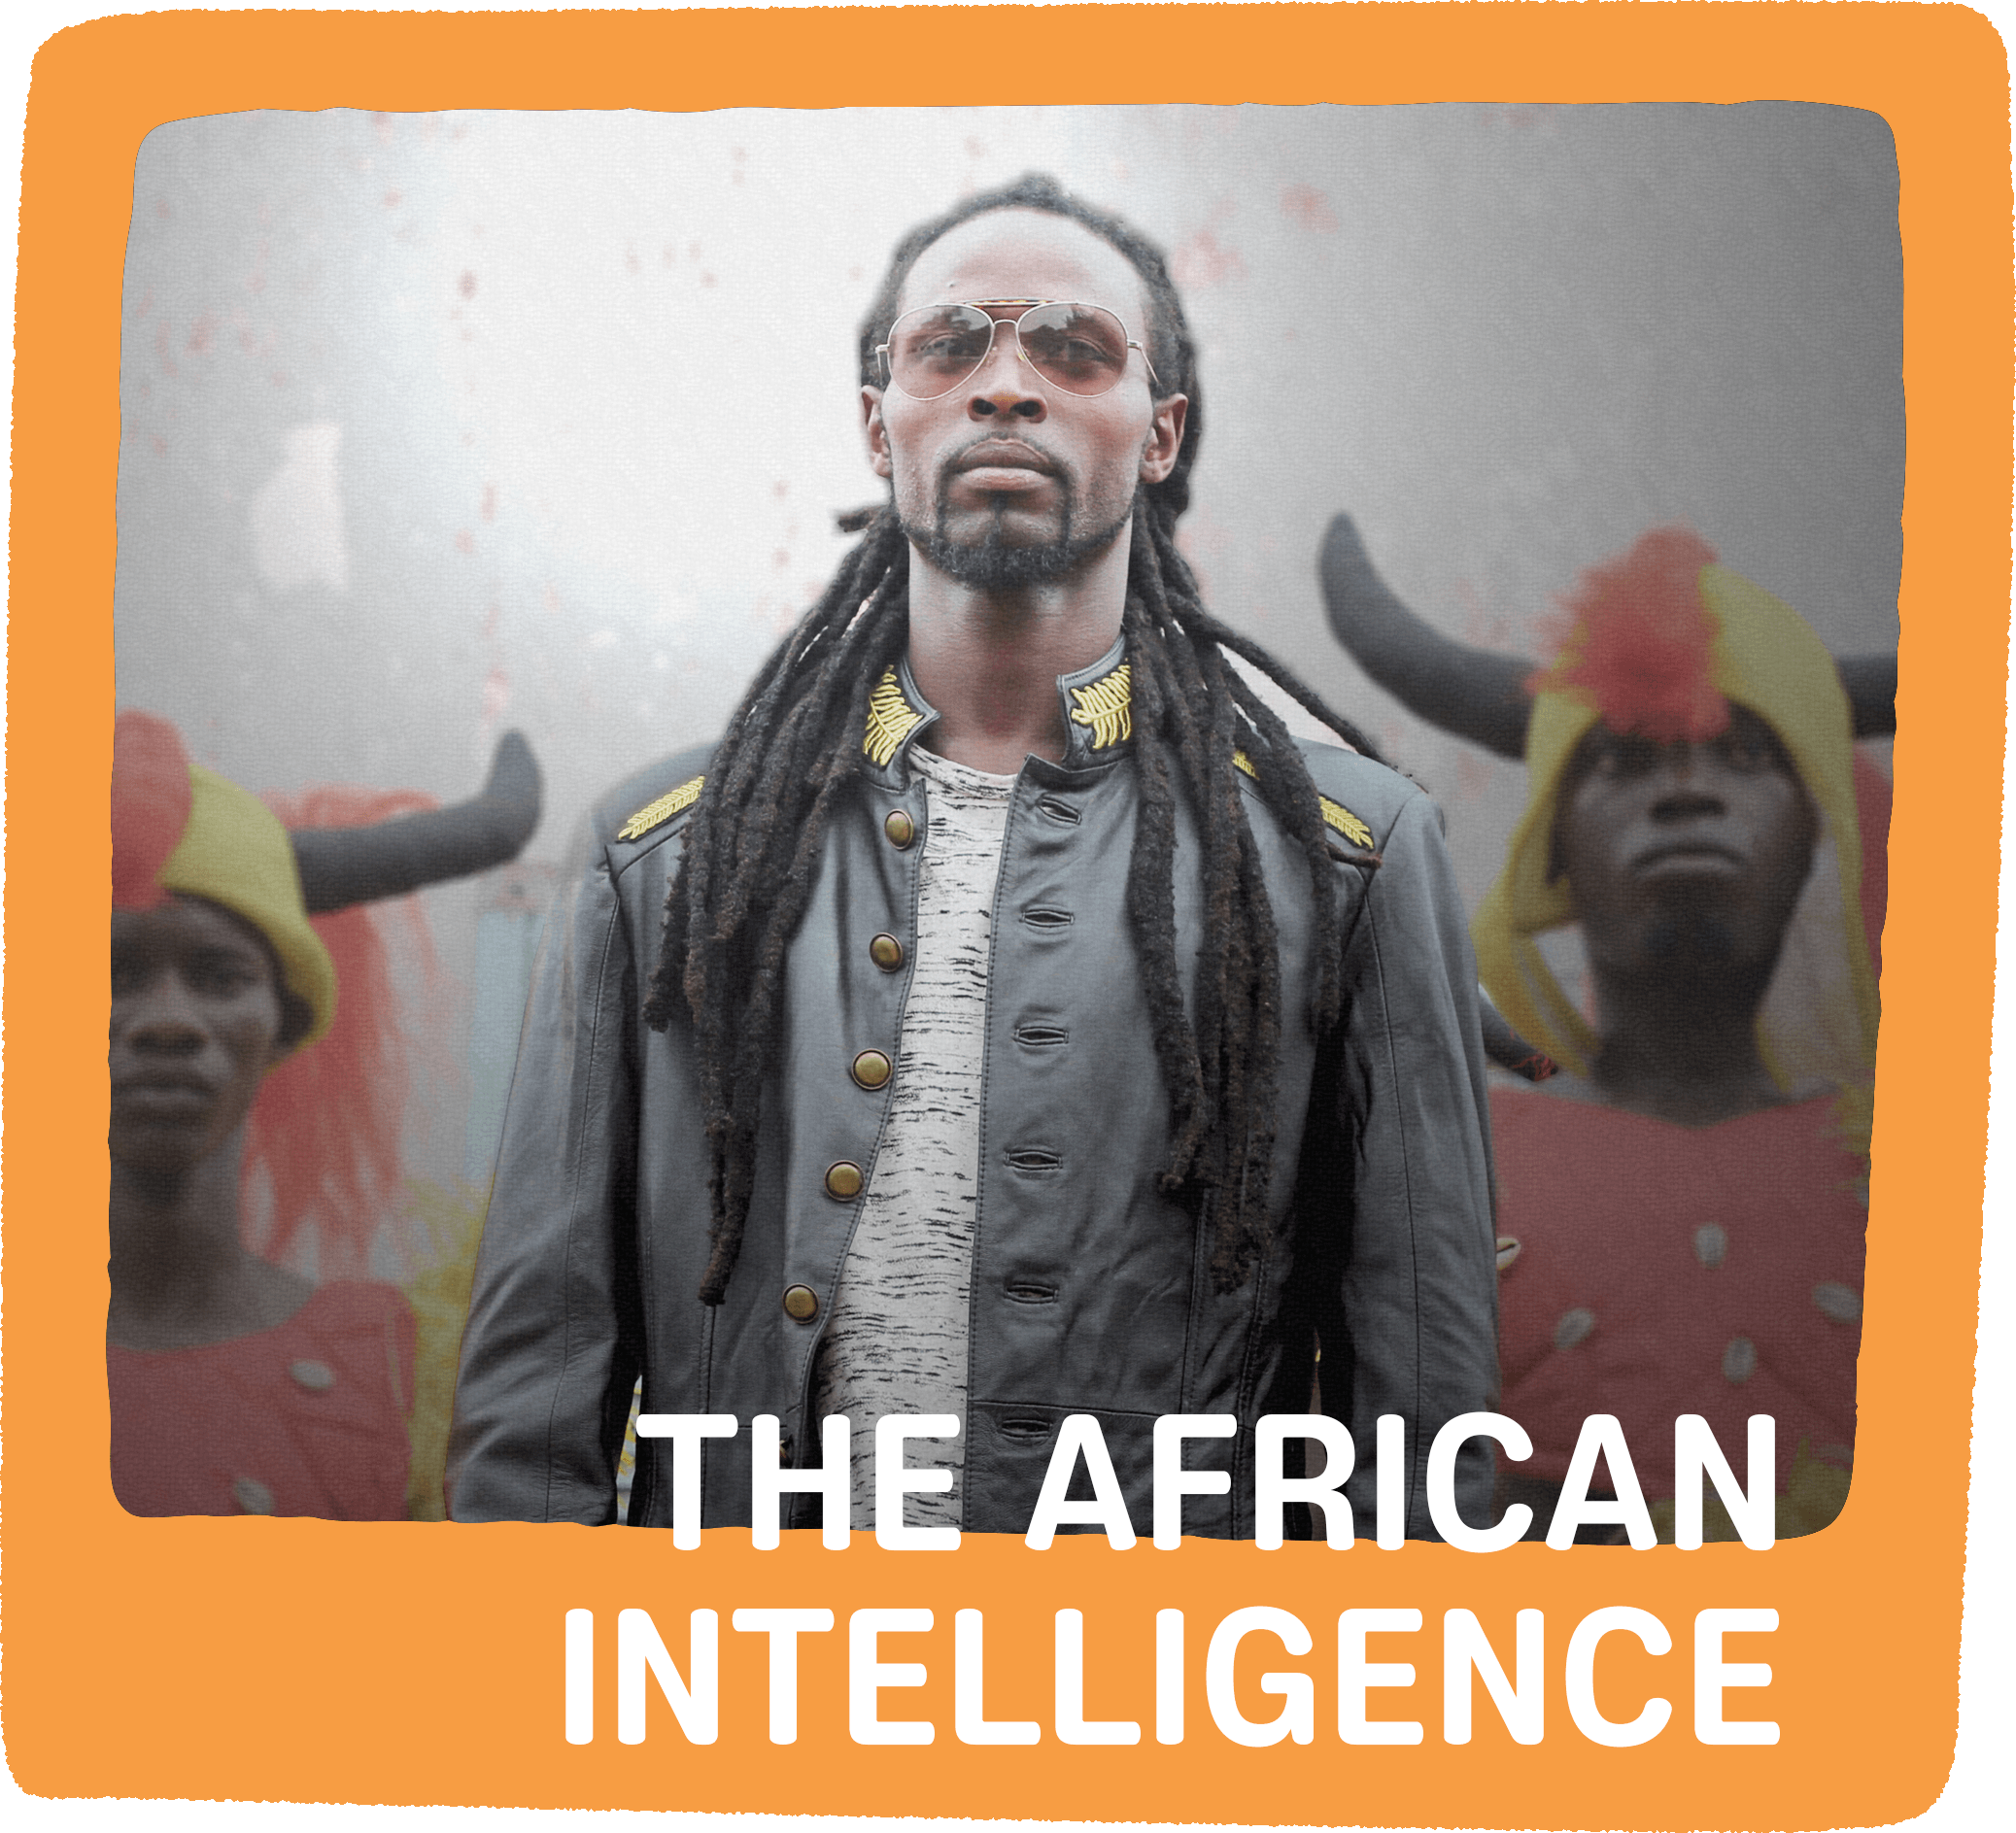 The African Intelligence